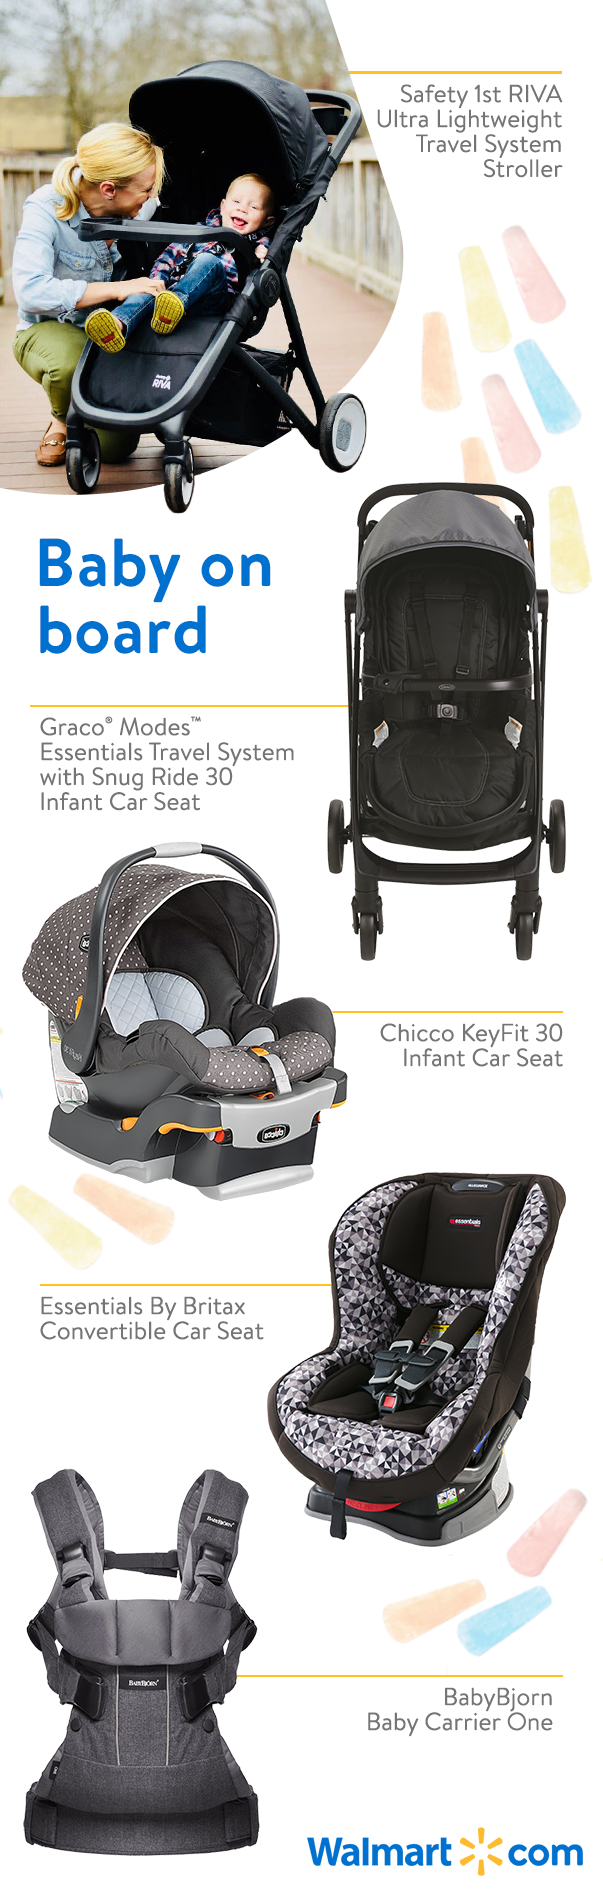 Make traveling with baby comfortable and safe with strollers